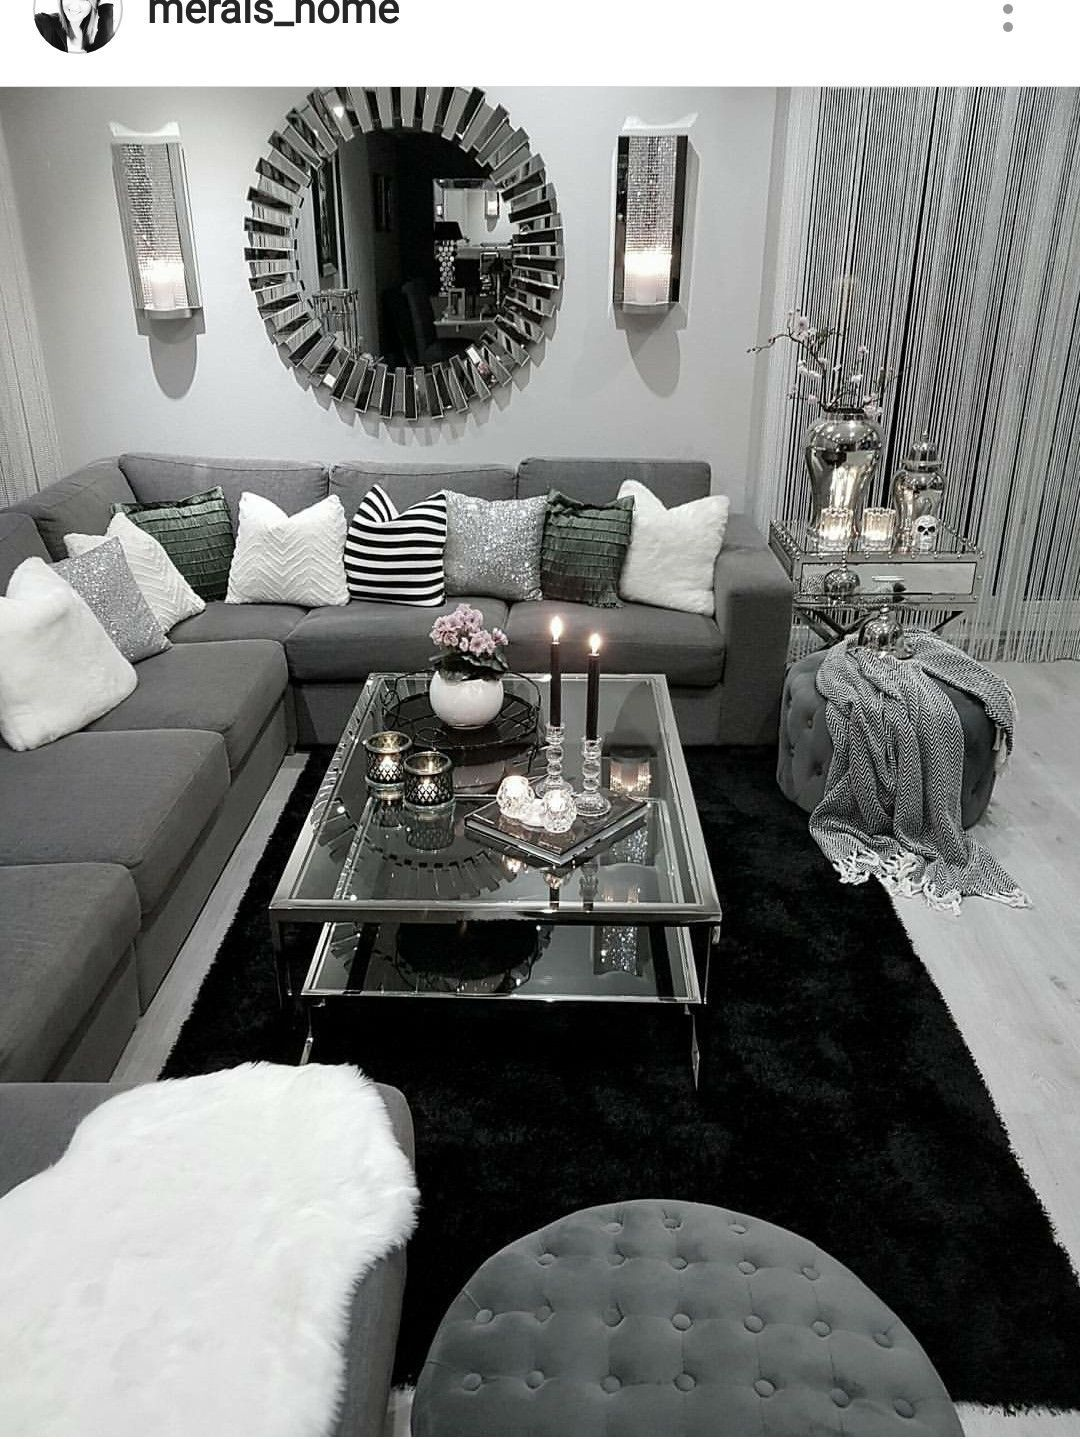 10 Comfortable and Cozy Living Rooms Ideas You Must Check! images